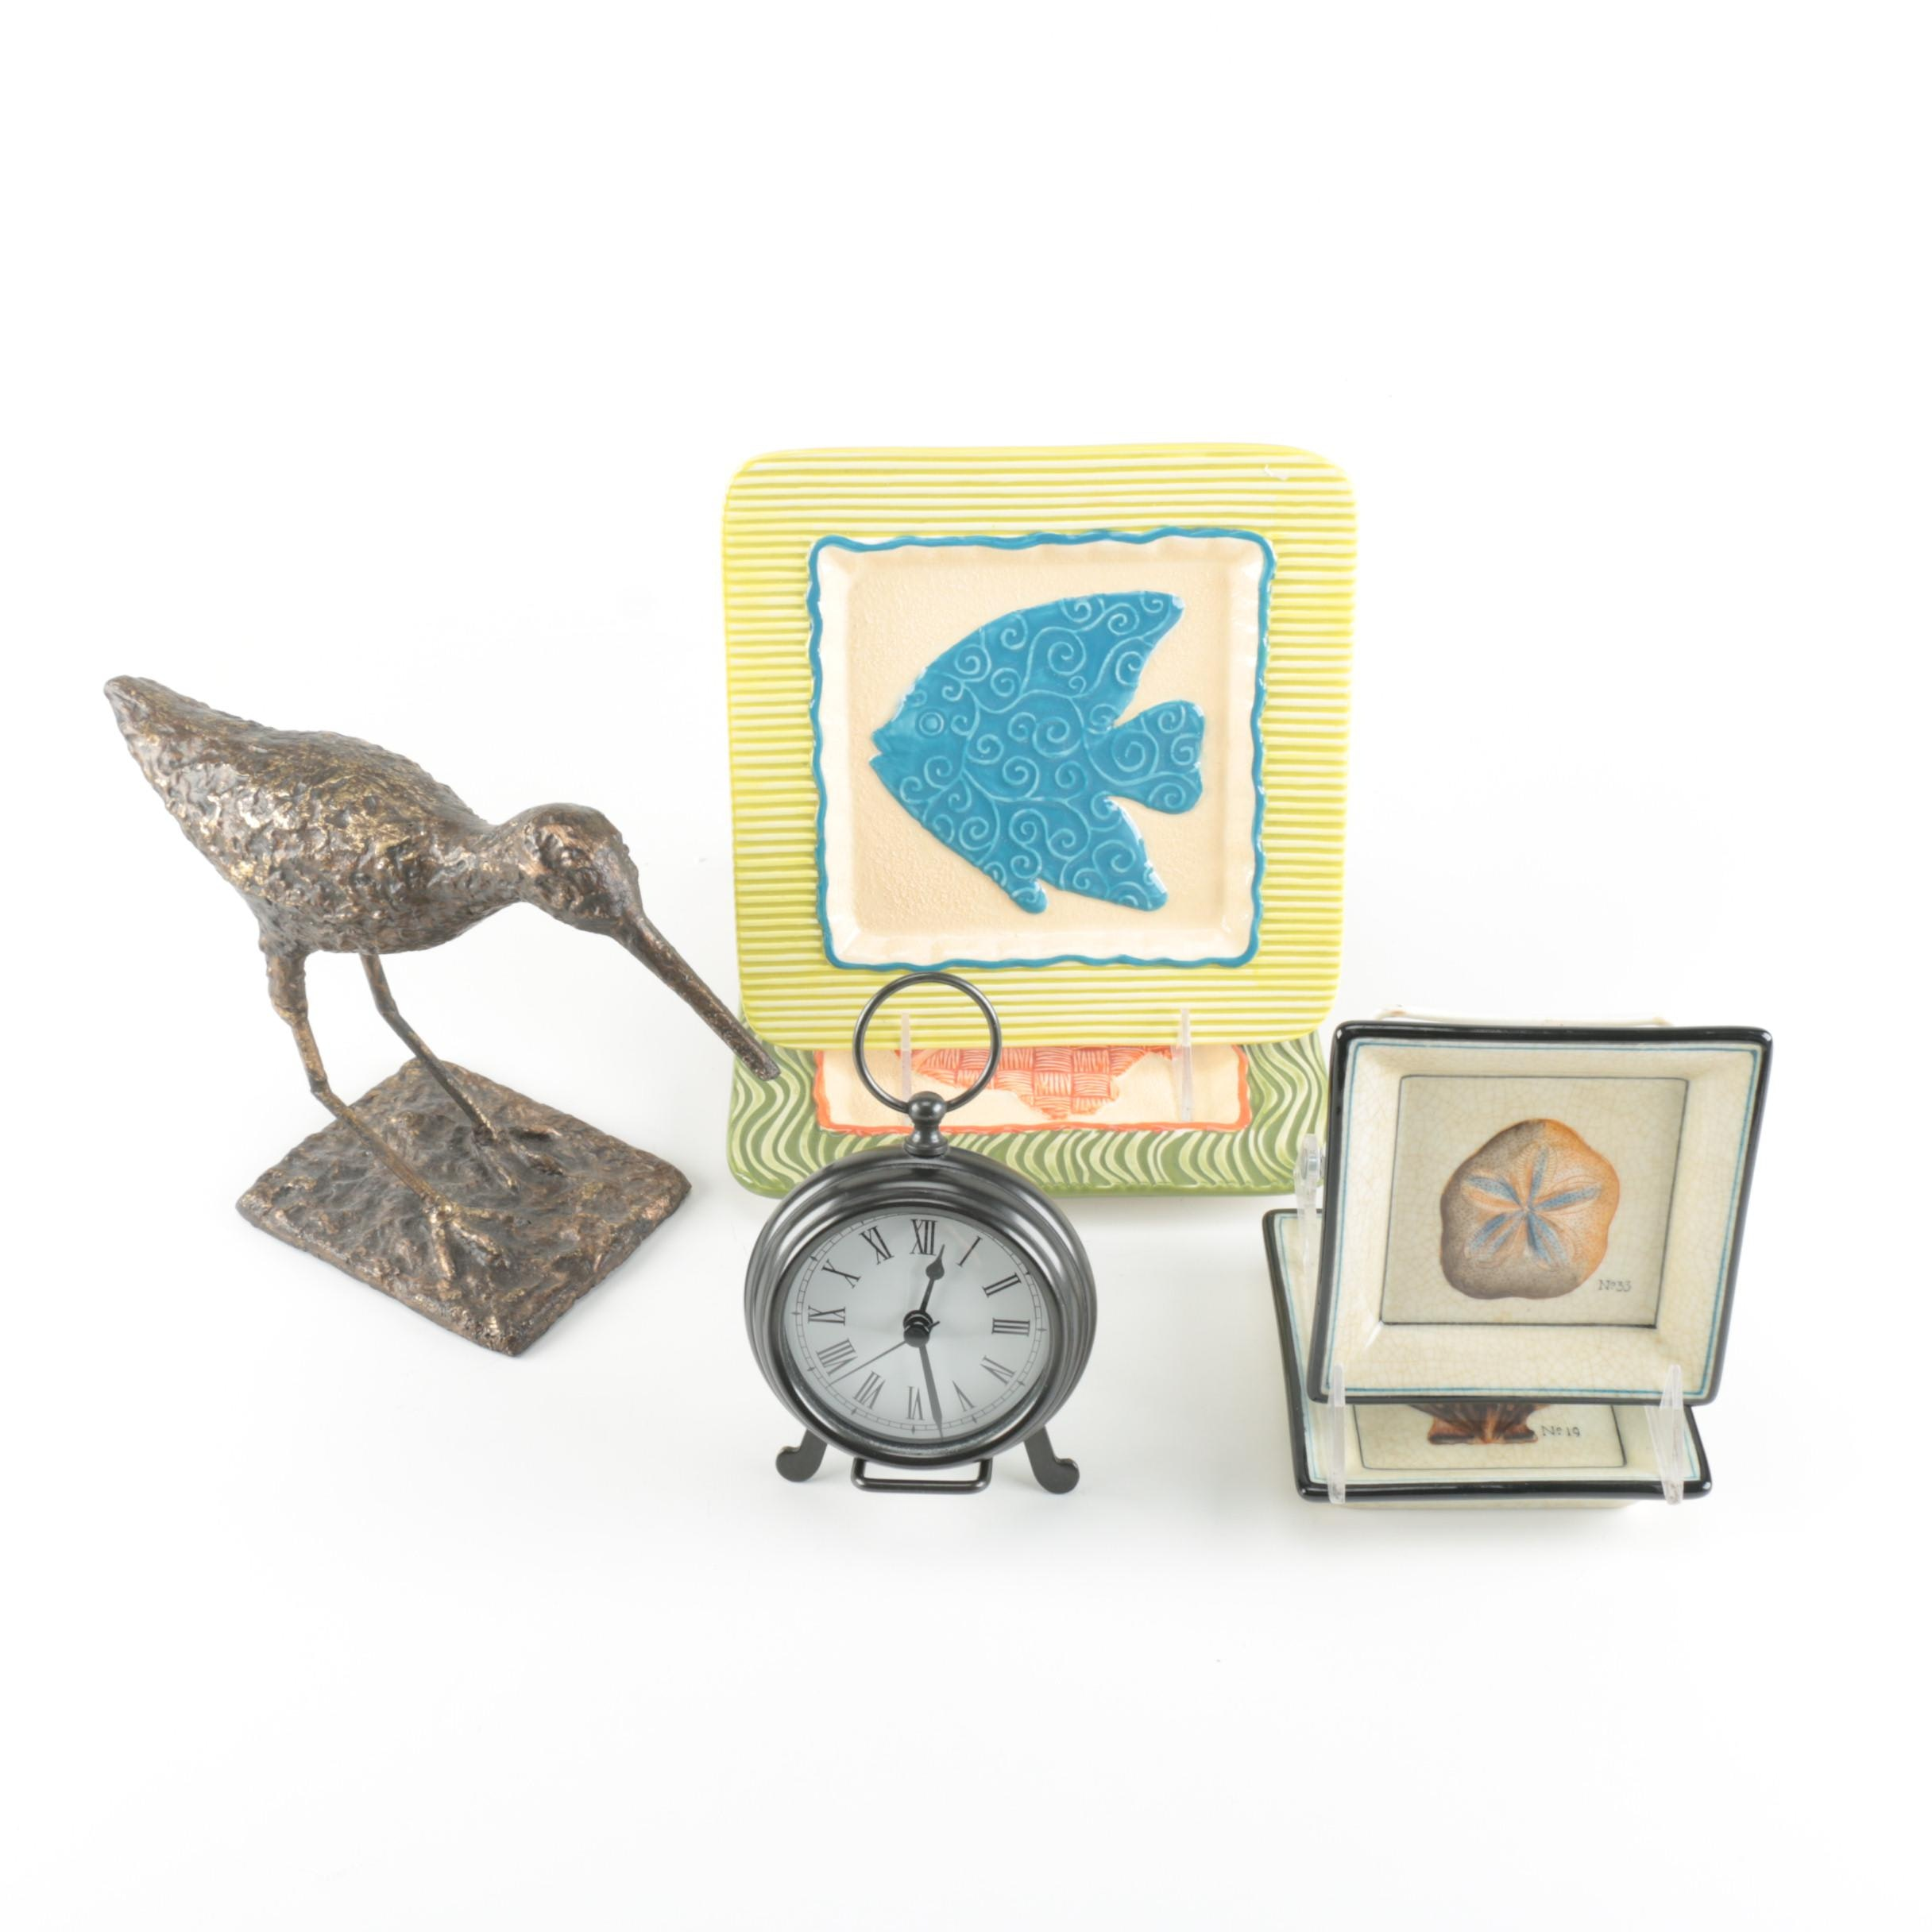 Beach-Themed Décor With Desk Clock